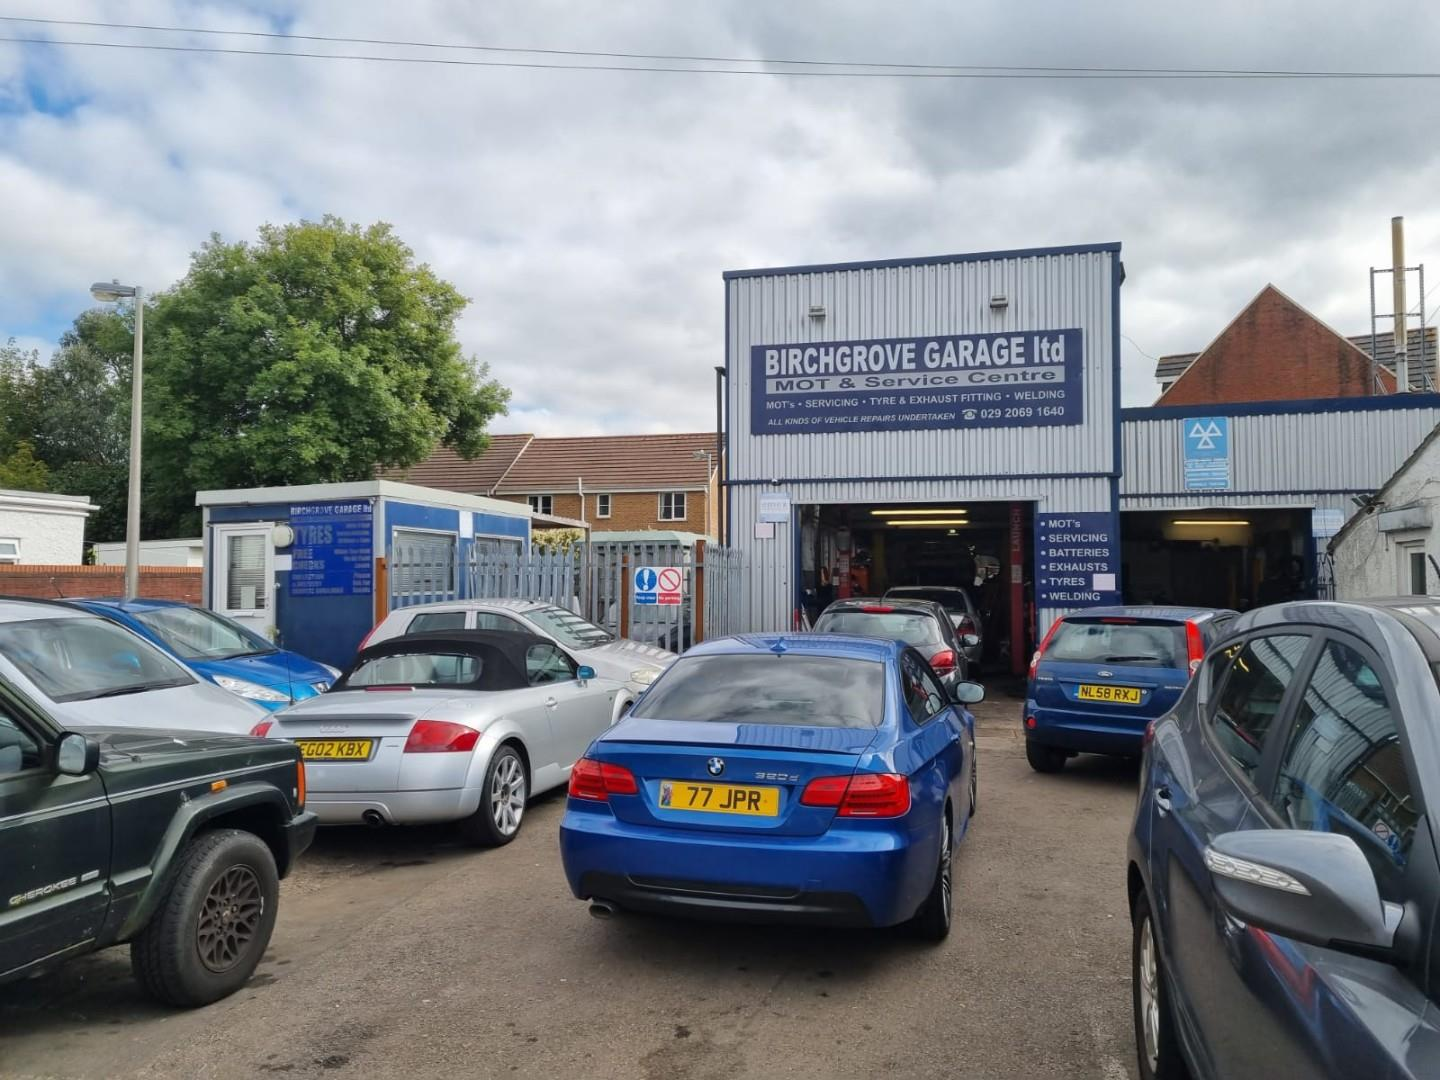 Commercial property for sale in Caerphilly Road, Cardiff, CF14